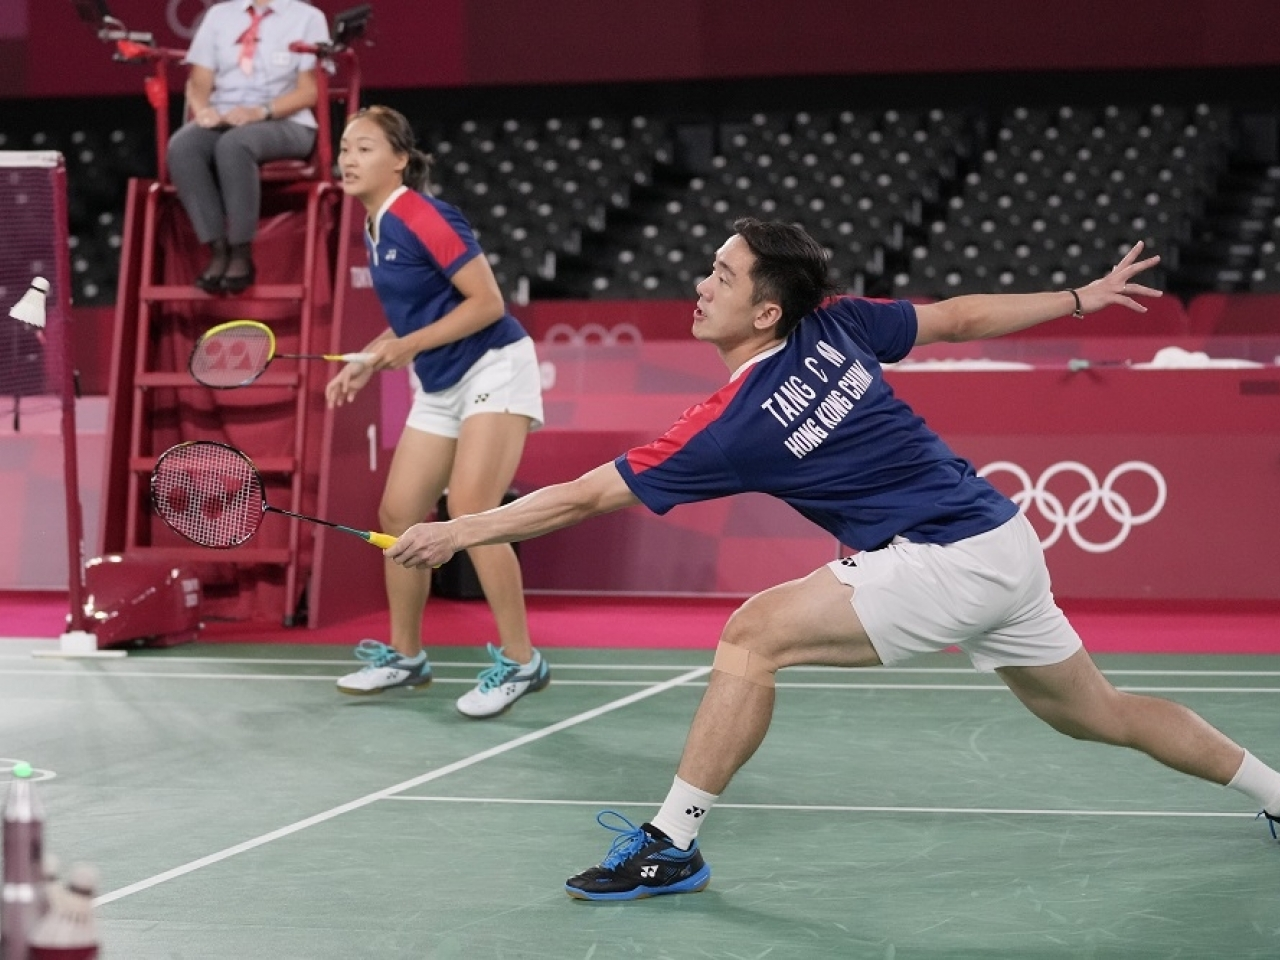 Tse Ying-suet and Tang Chun-man will leave the Tokyo Olympics without a medal after losing the bronze medal match against Japan. Photo: AP